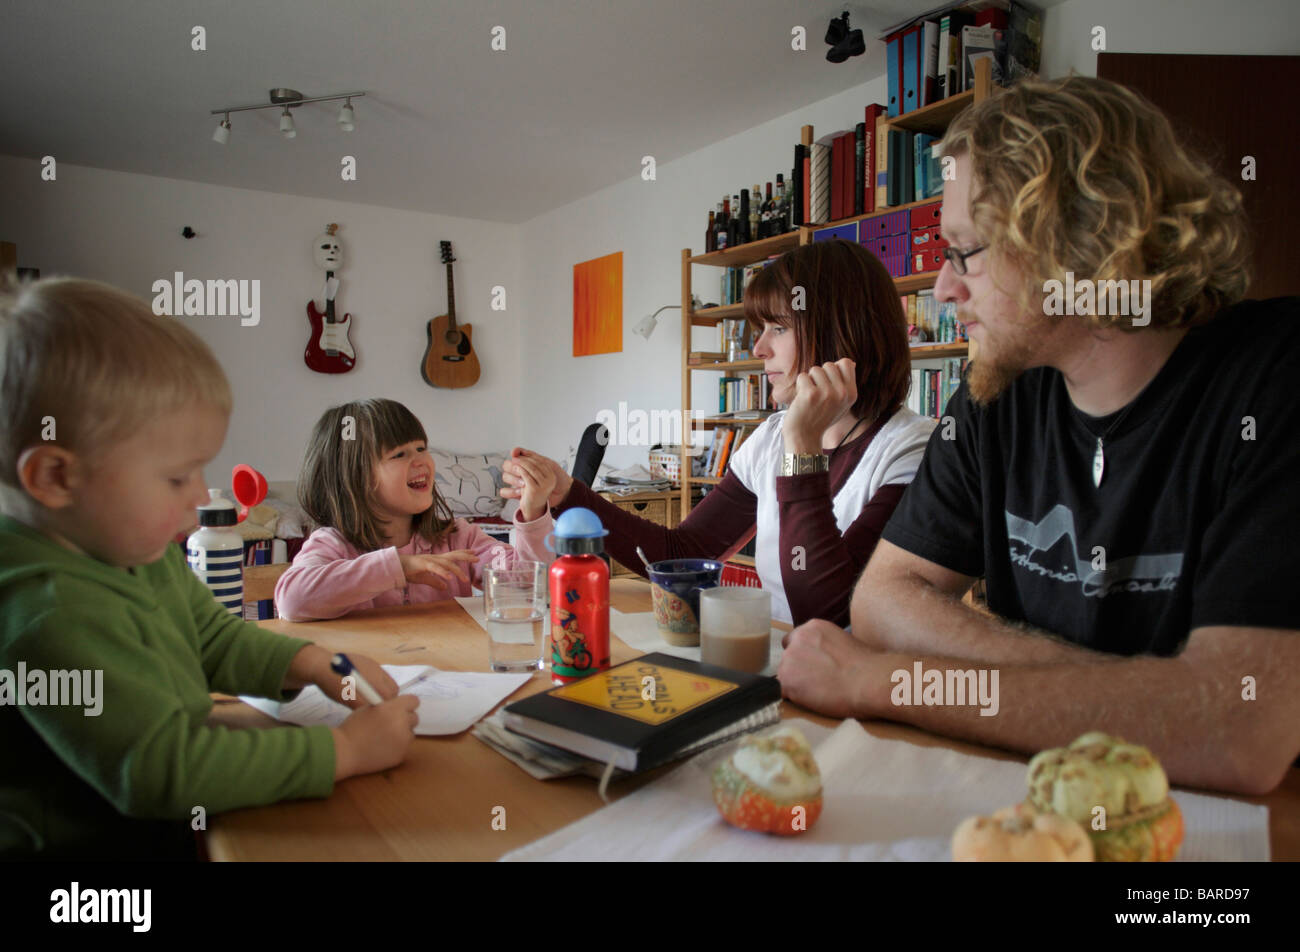 Junge Familie zu Hause Stock Photo